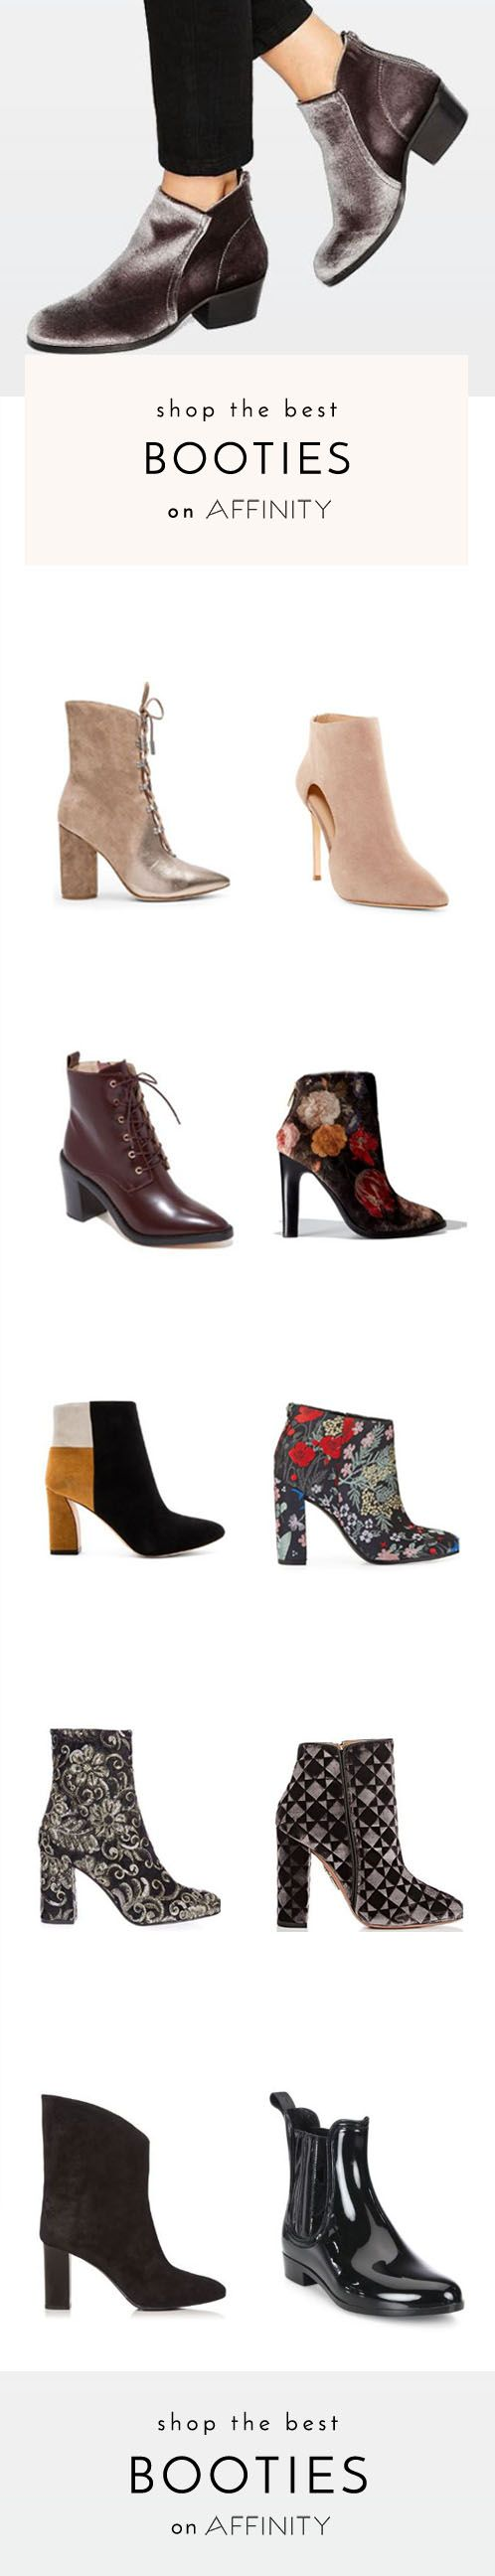 Booties are the perfect shoes for cold-weather months. So if you don't have a go-to pair (or two!) in your closet yet, check out our selection of the best ankle boots of the season – from high heel to flats and classic to trendy.